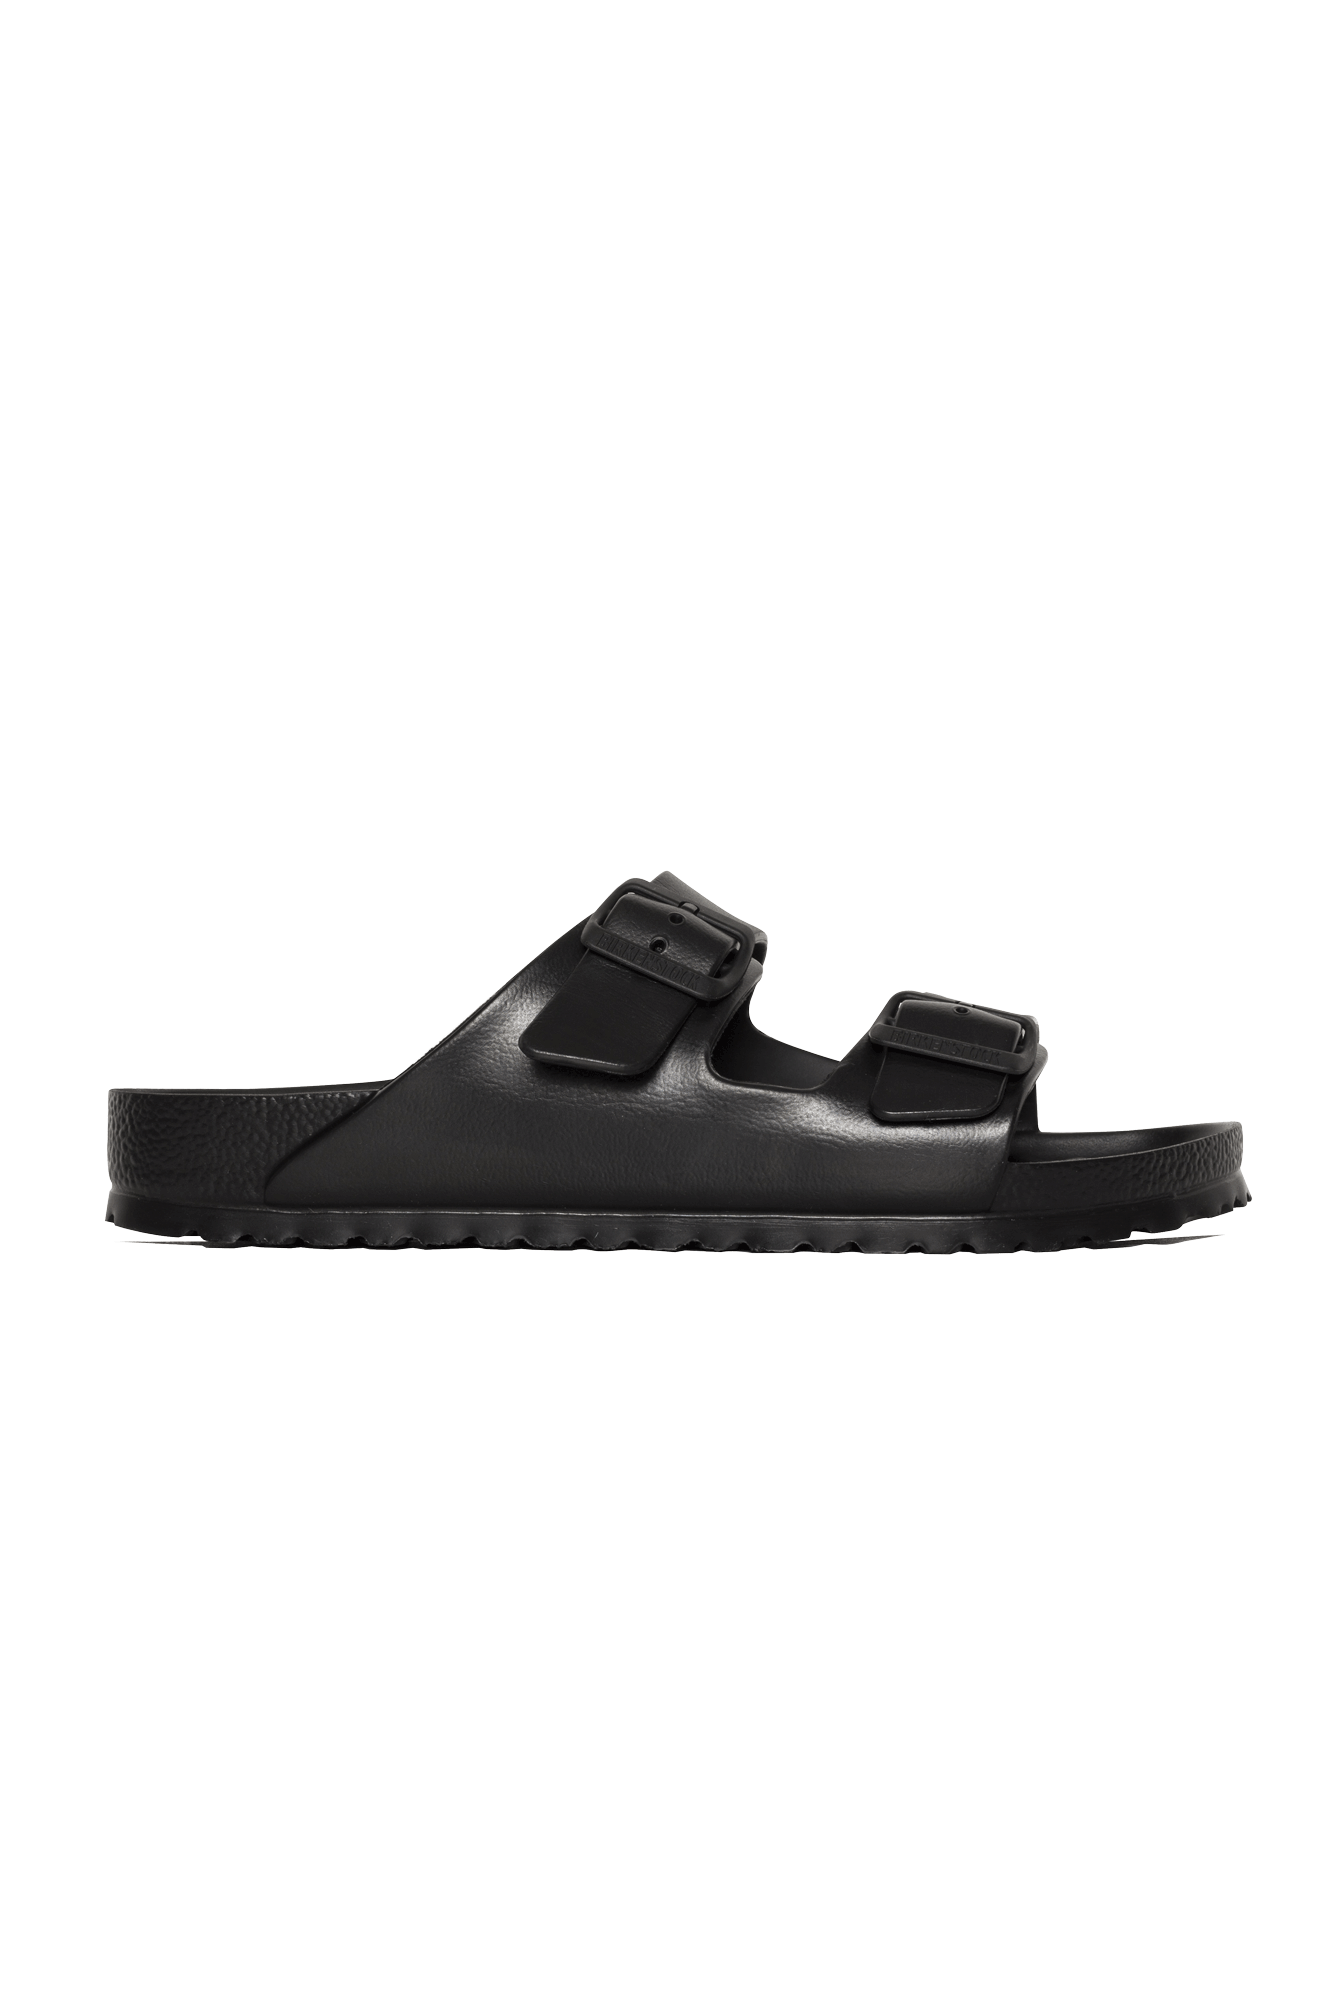 Sandals & Slides Birkenstock Arizona EVA Black - One Block Down